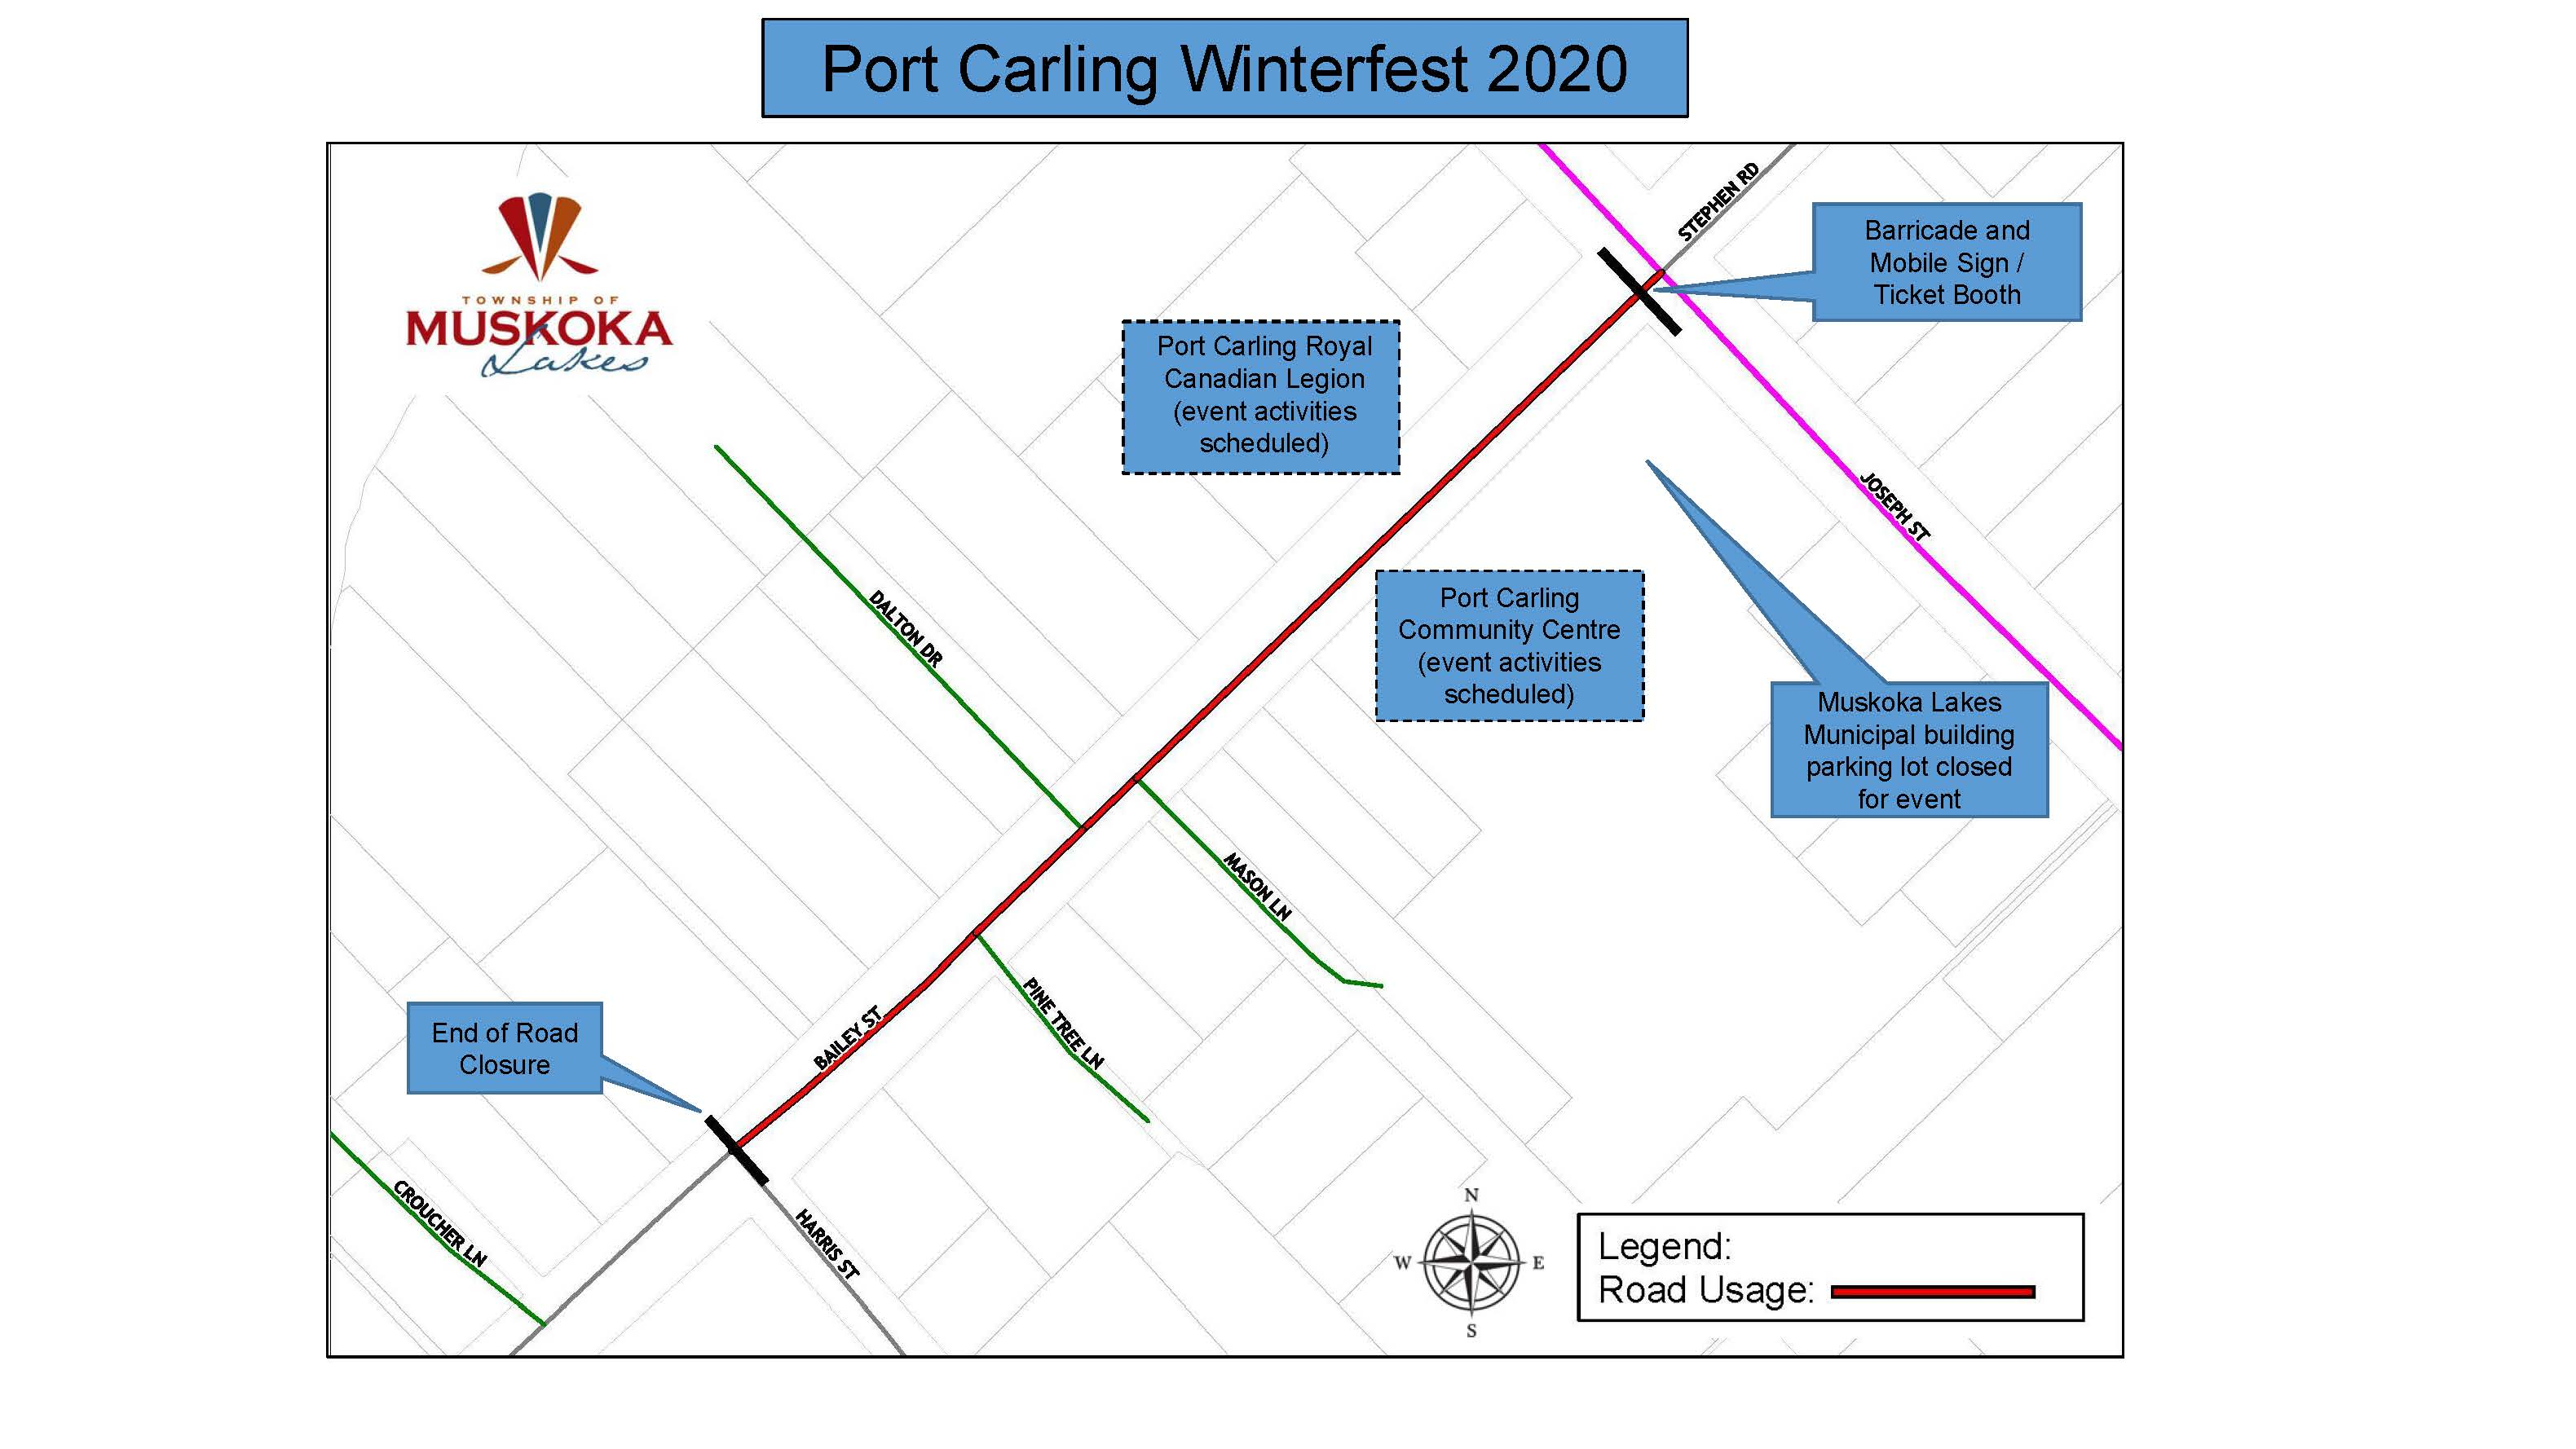 map of port carling winterfest road closure